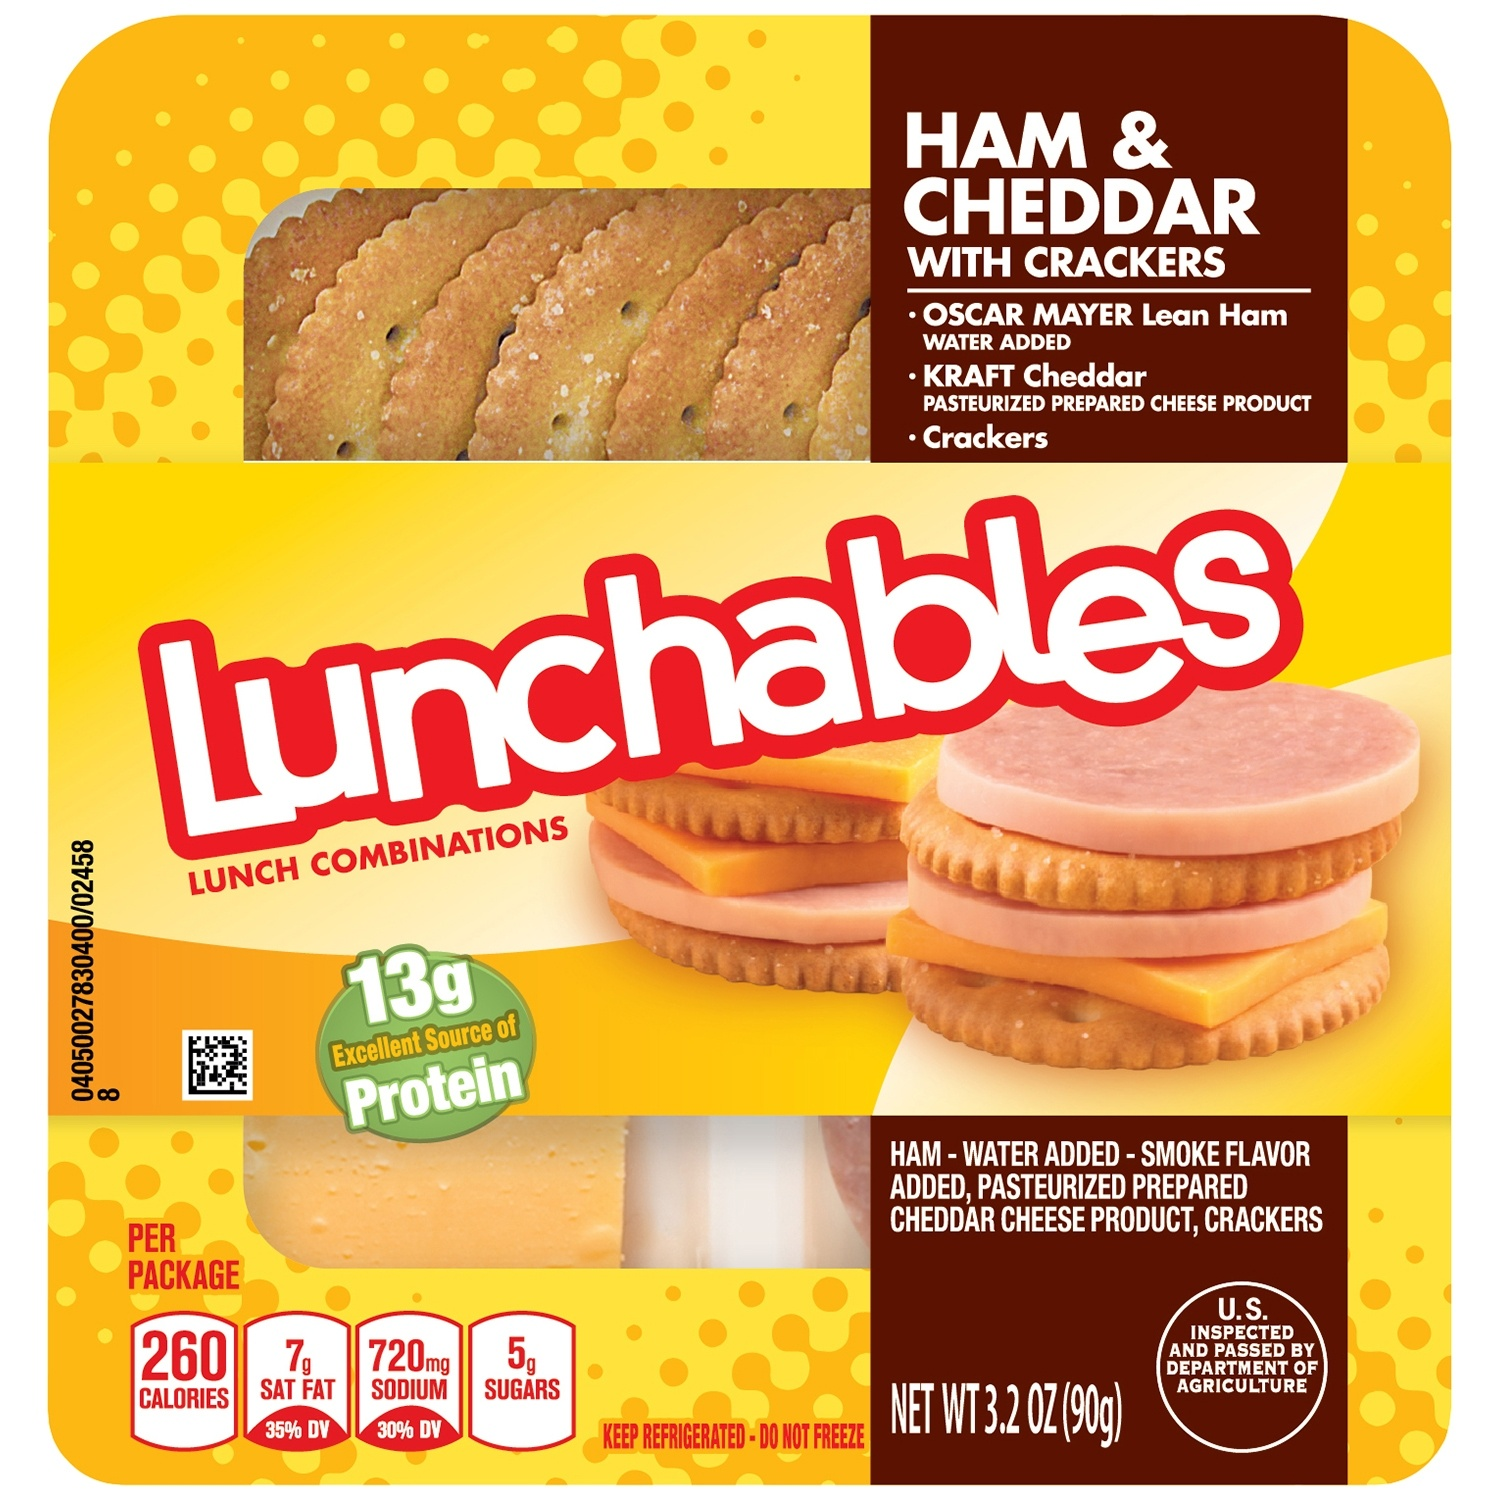 lunchables-food-packaging